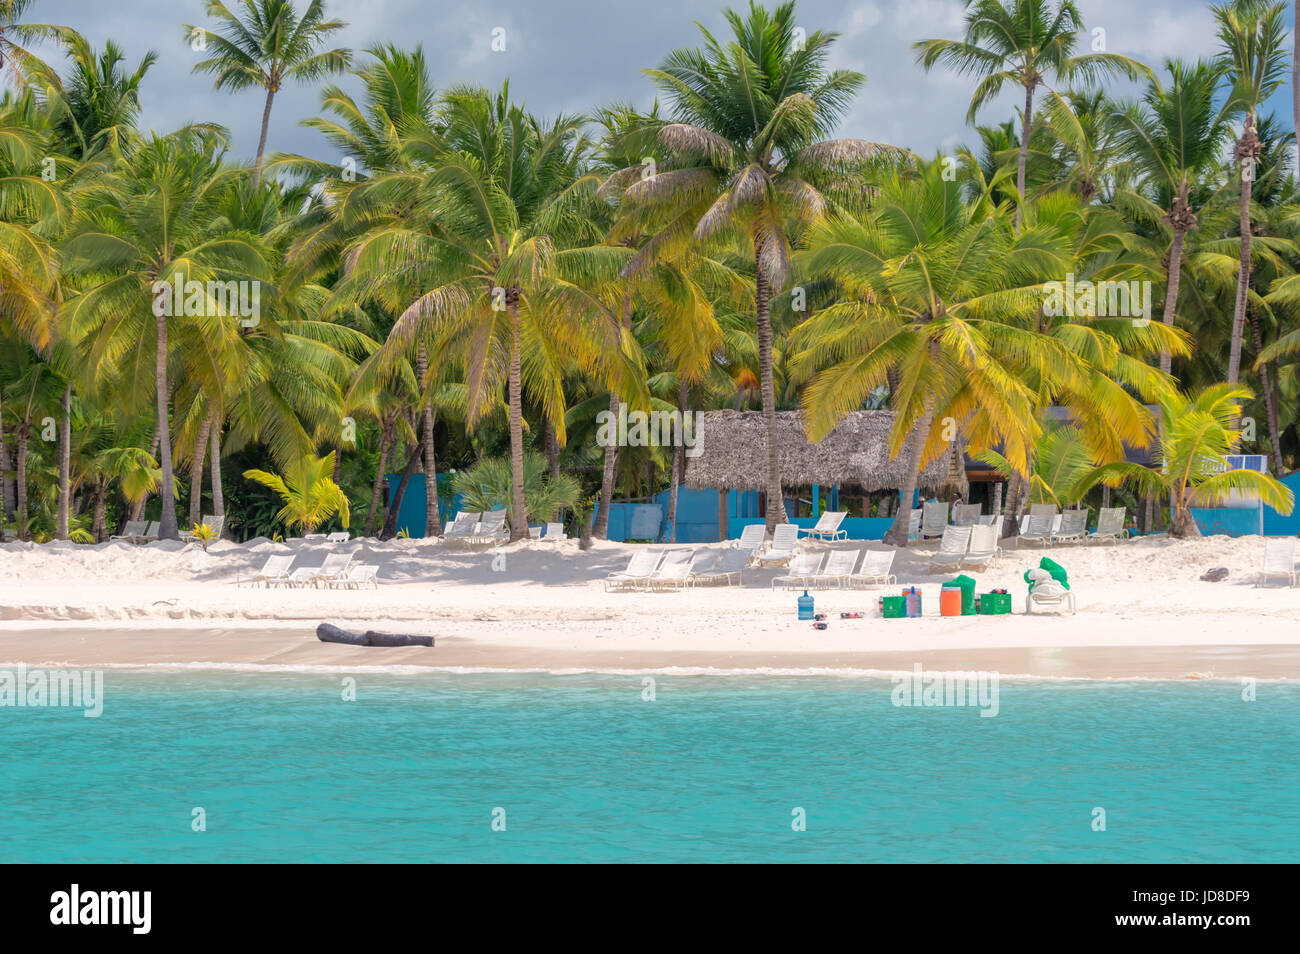 Beach on the Caribbean island of Saona in Dominican Republic. - Stock Image